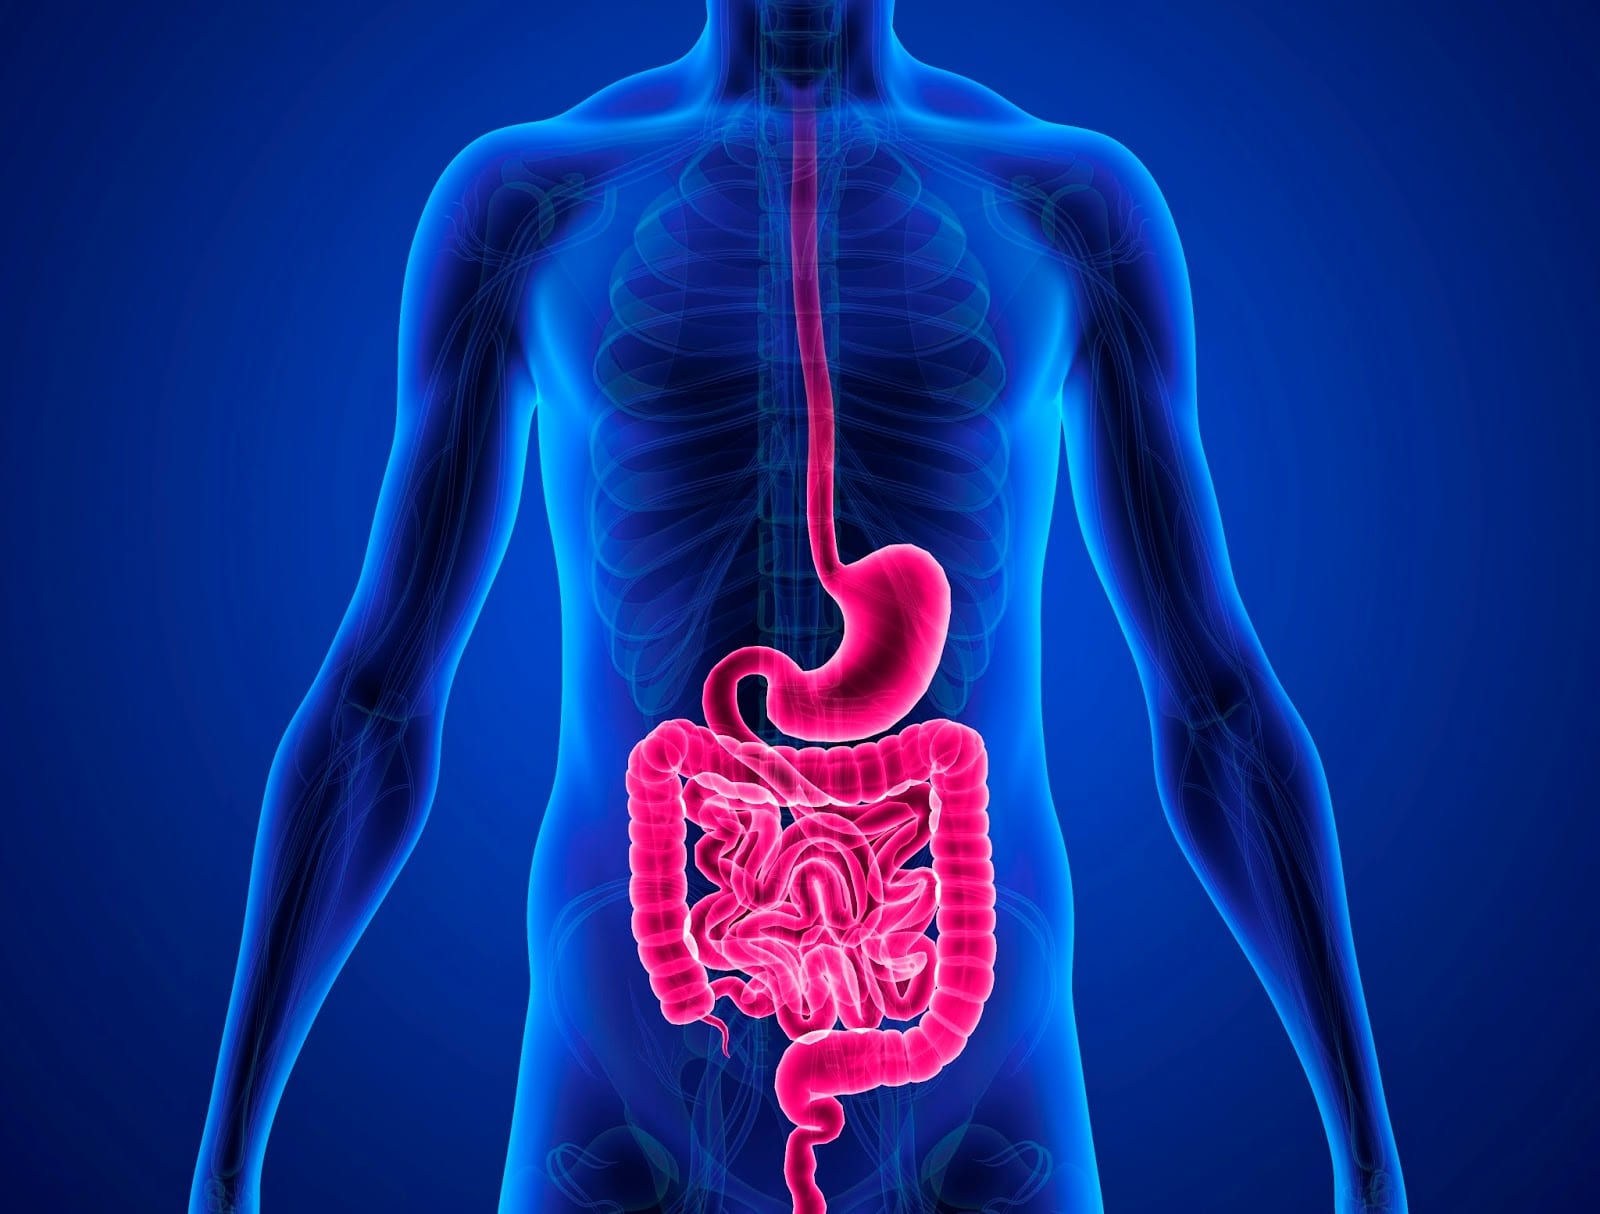 90% of All Diseases Begin in the Colon! Here's What You Can Do To Avoid Them and Protect Your Body!